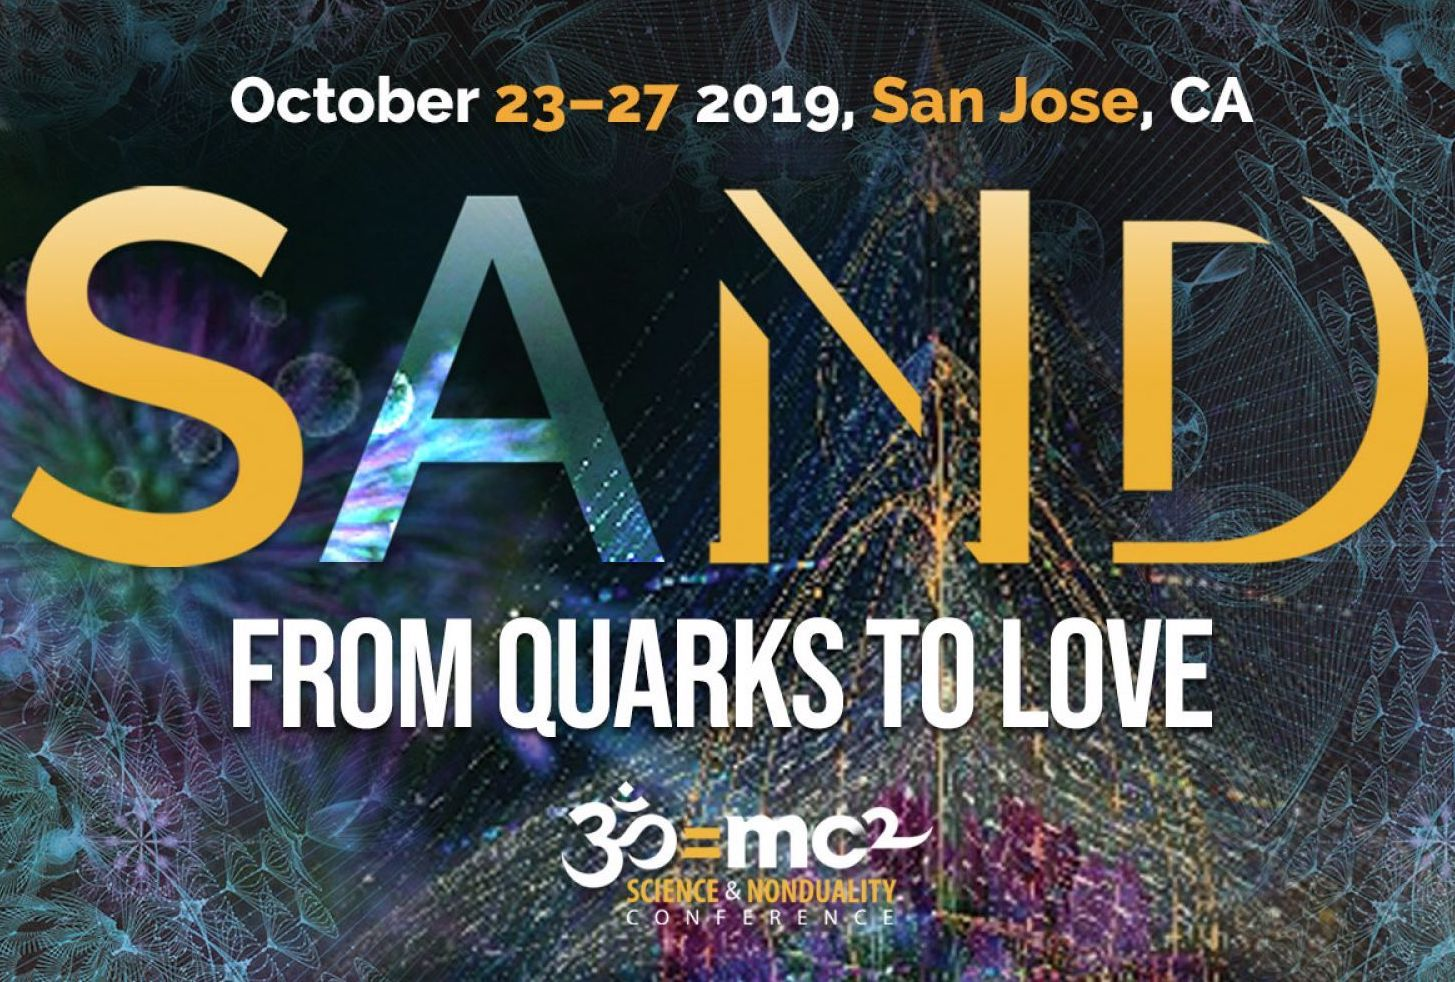 Science and Nonduality Conference // Oct. 23-27, 2019 in San Jose, California